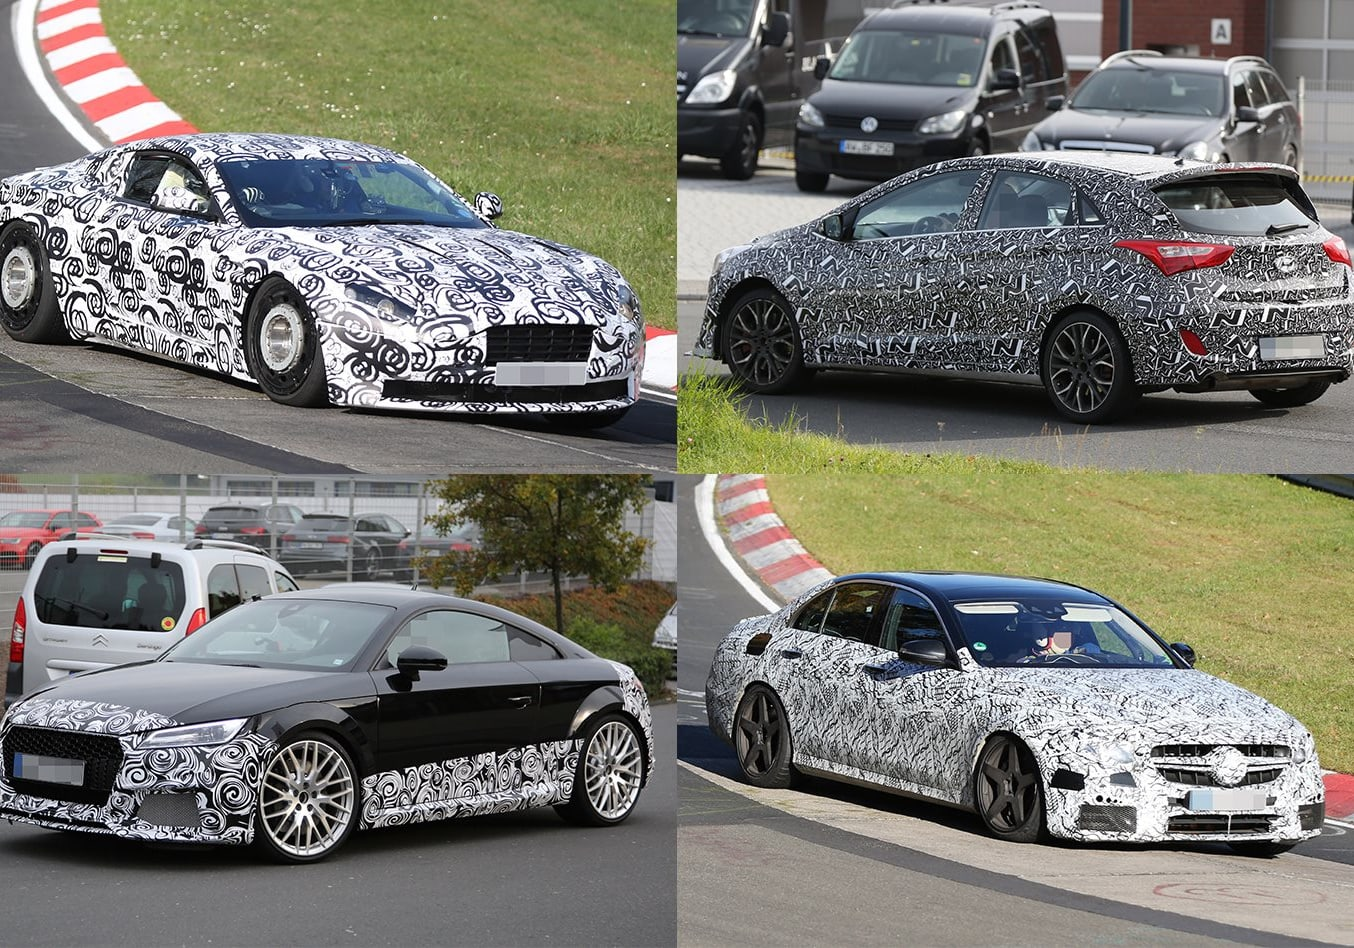 Cars coming in 2016